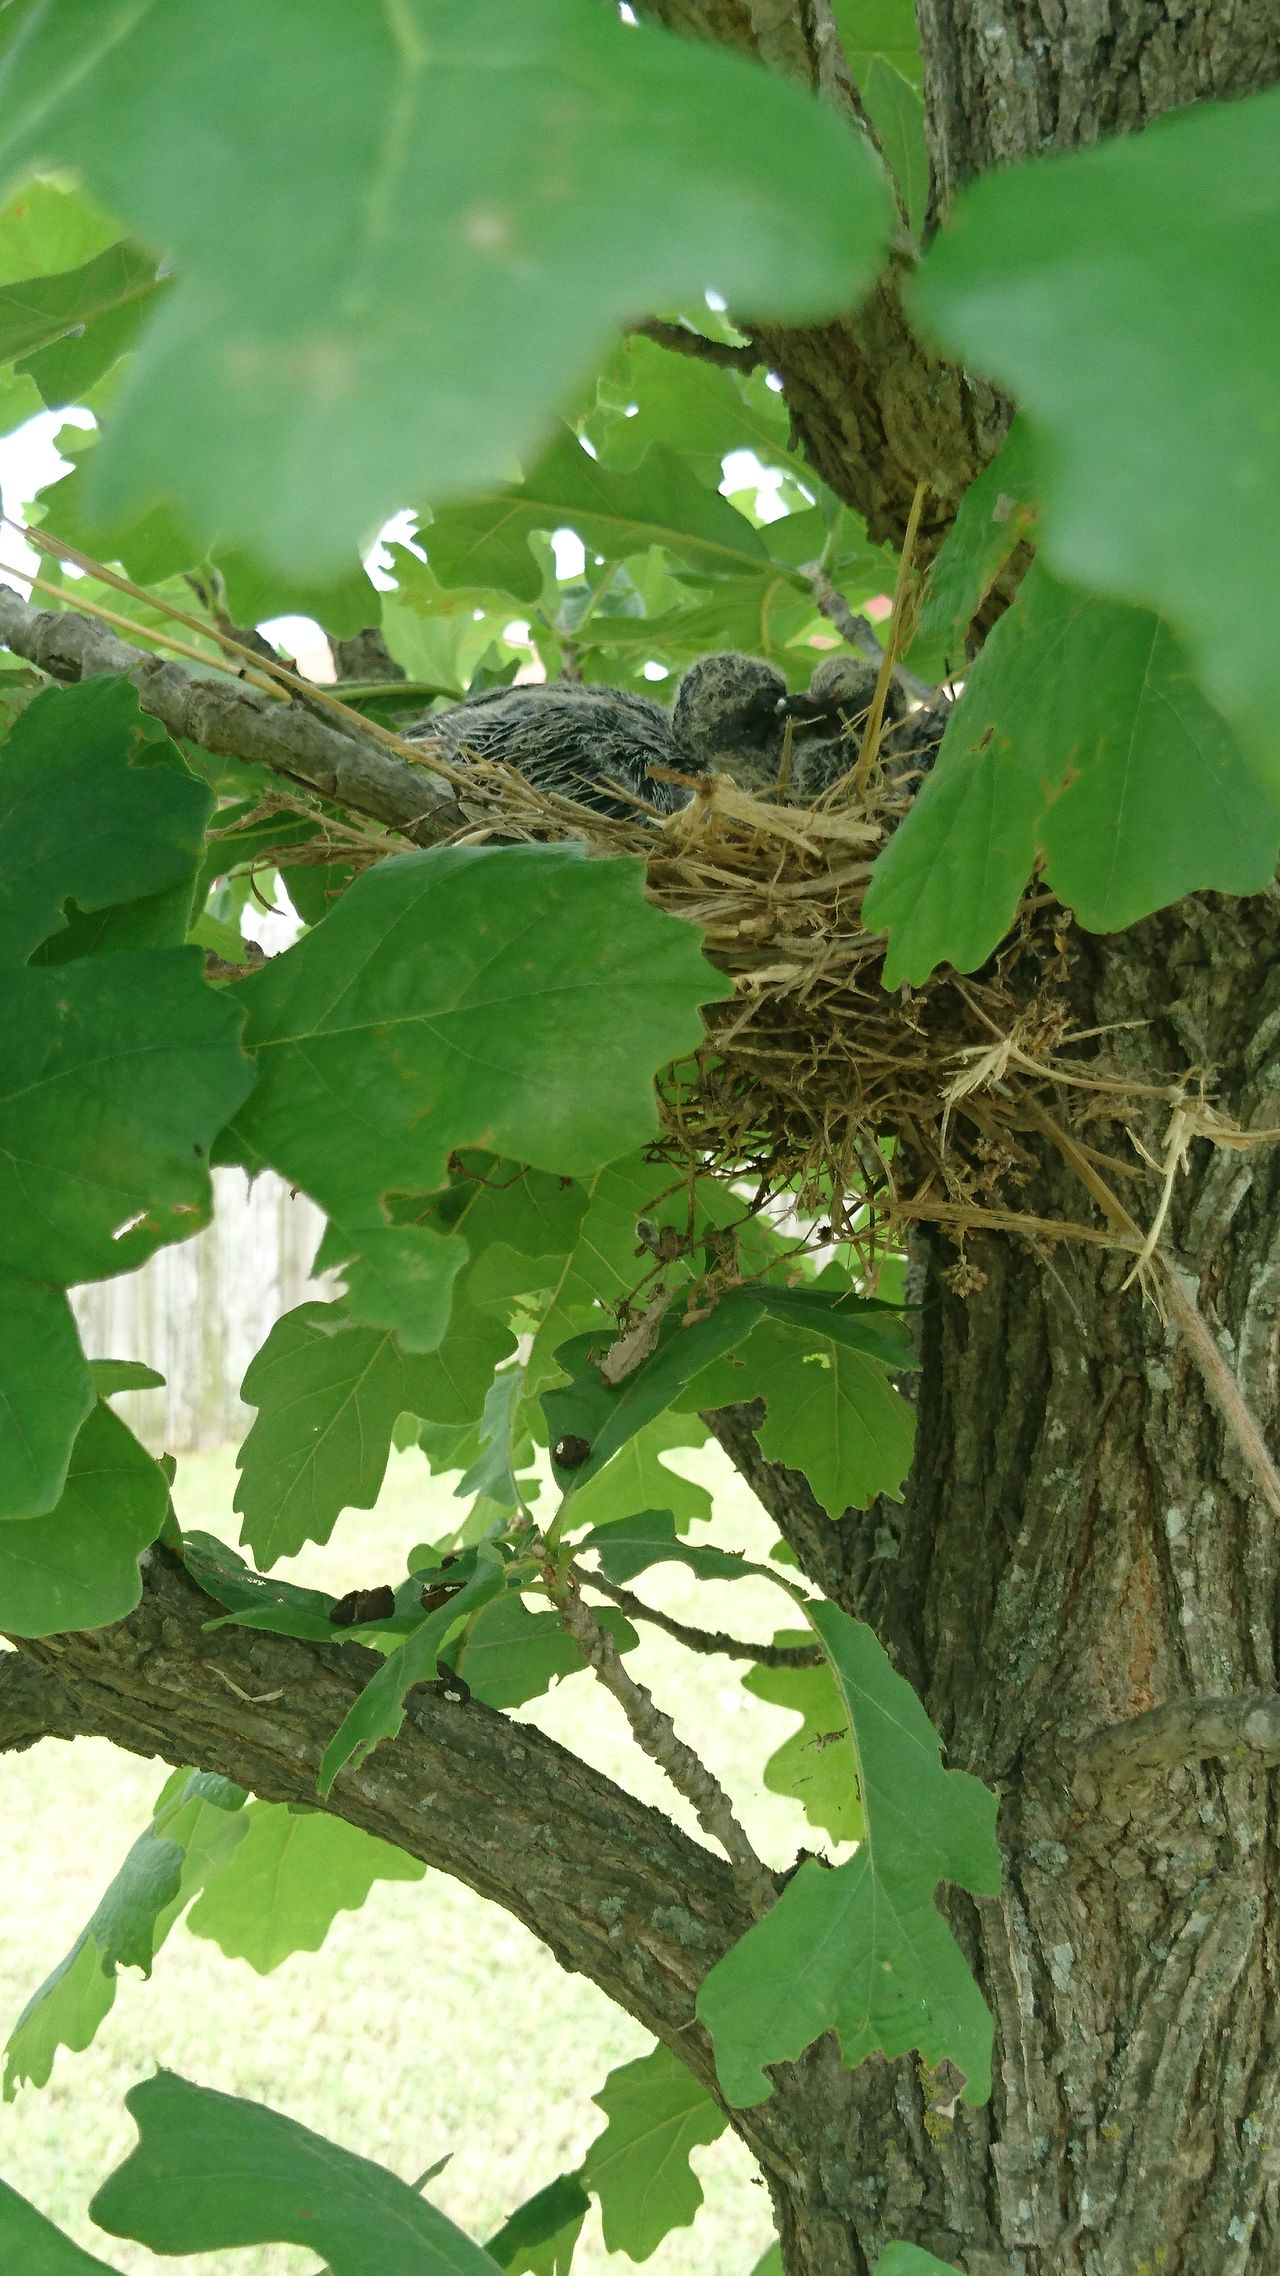 Baby Birds In Nest Bird Nest Closeup Bird Nest On The Tree Bird Photography No People Outdoors Day Nature Animal Wildlife Animal Themes Trees And Bushes Beauty In Nature Viewing The World Outside